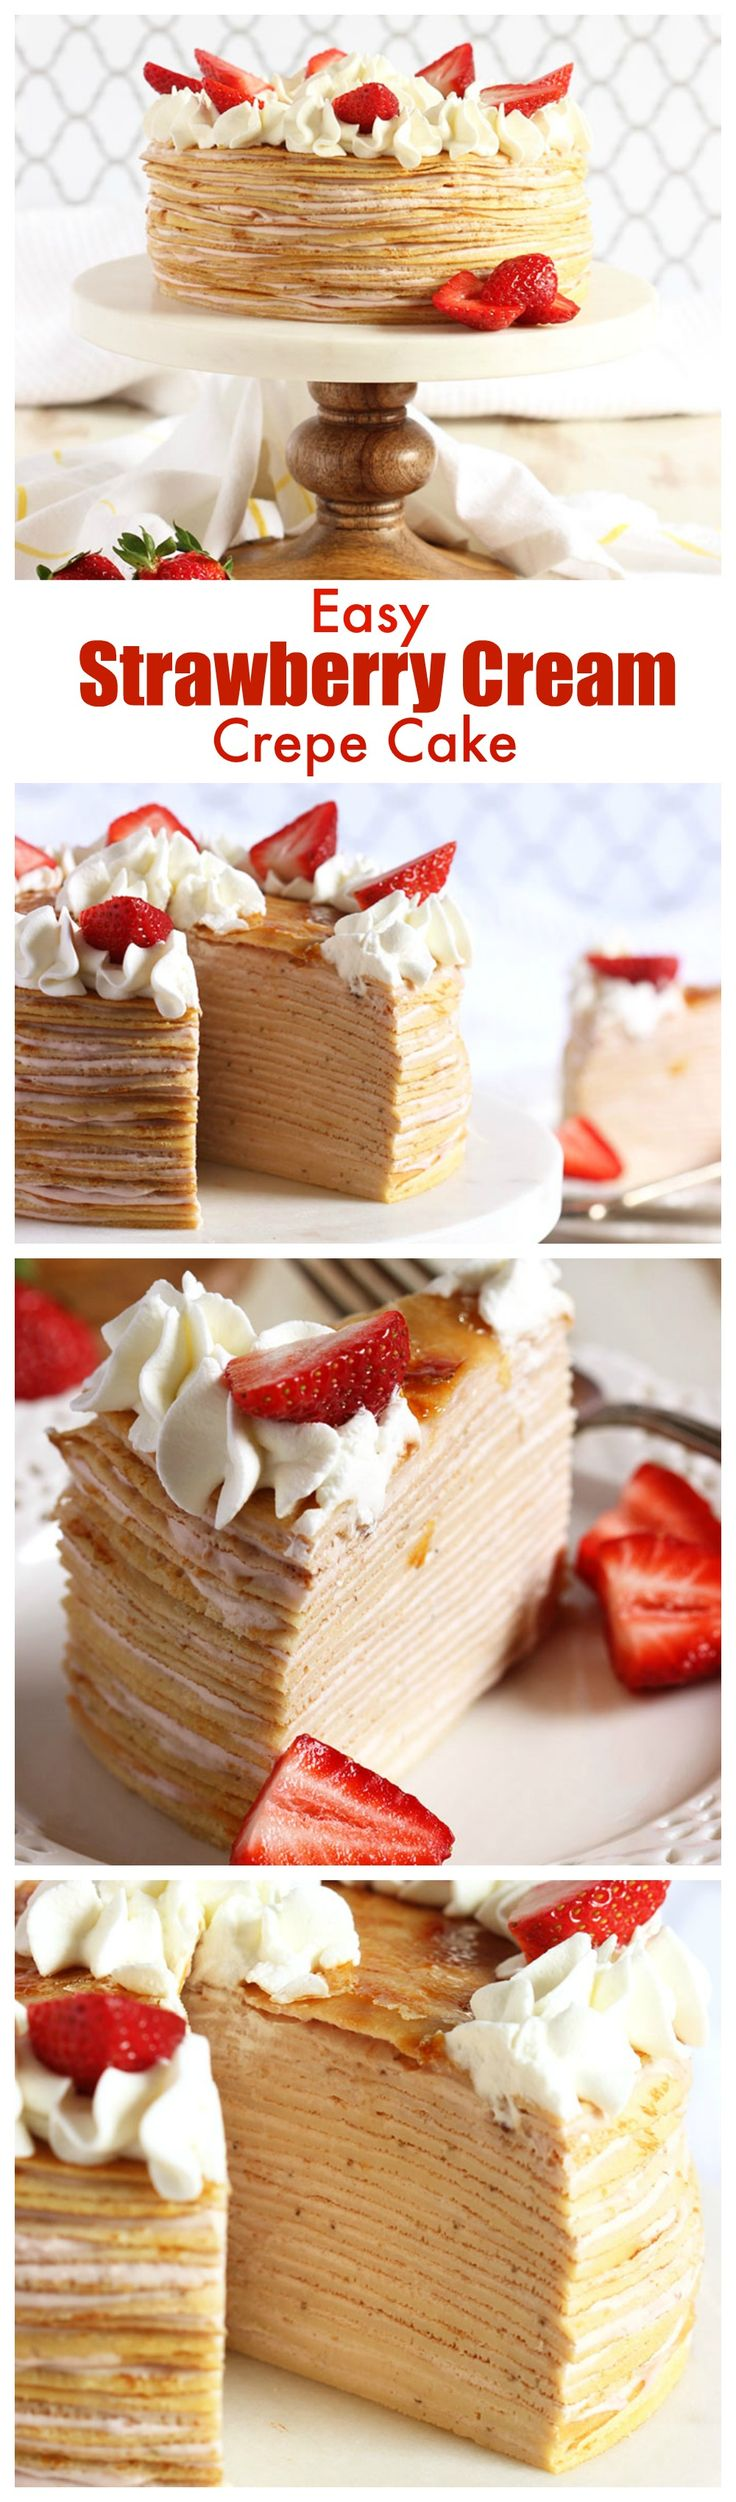 No baking required to make this easy Strawberry Cream Crepe Cake recipe. Perfect for spring entertaining! | @suburbbansoapbox